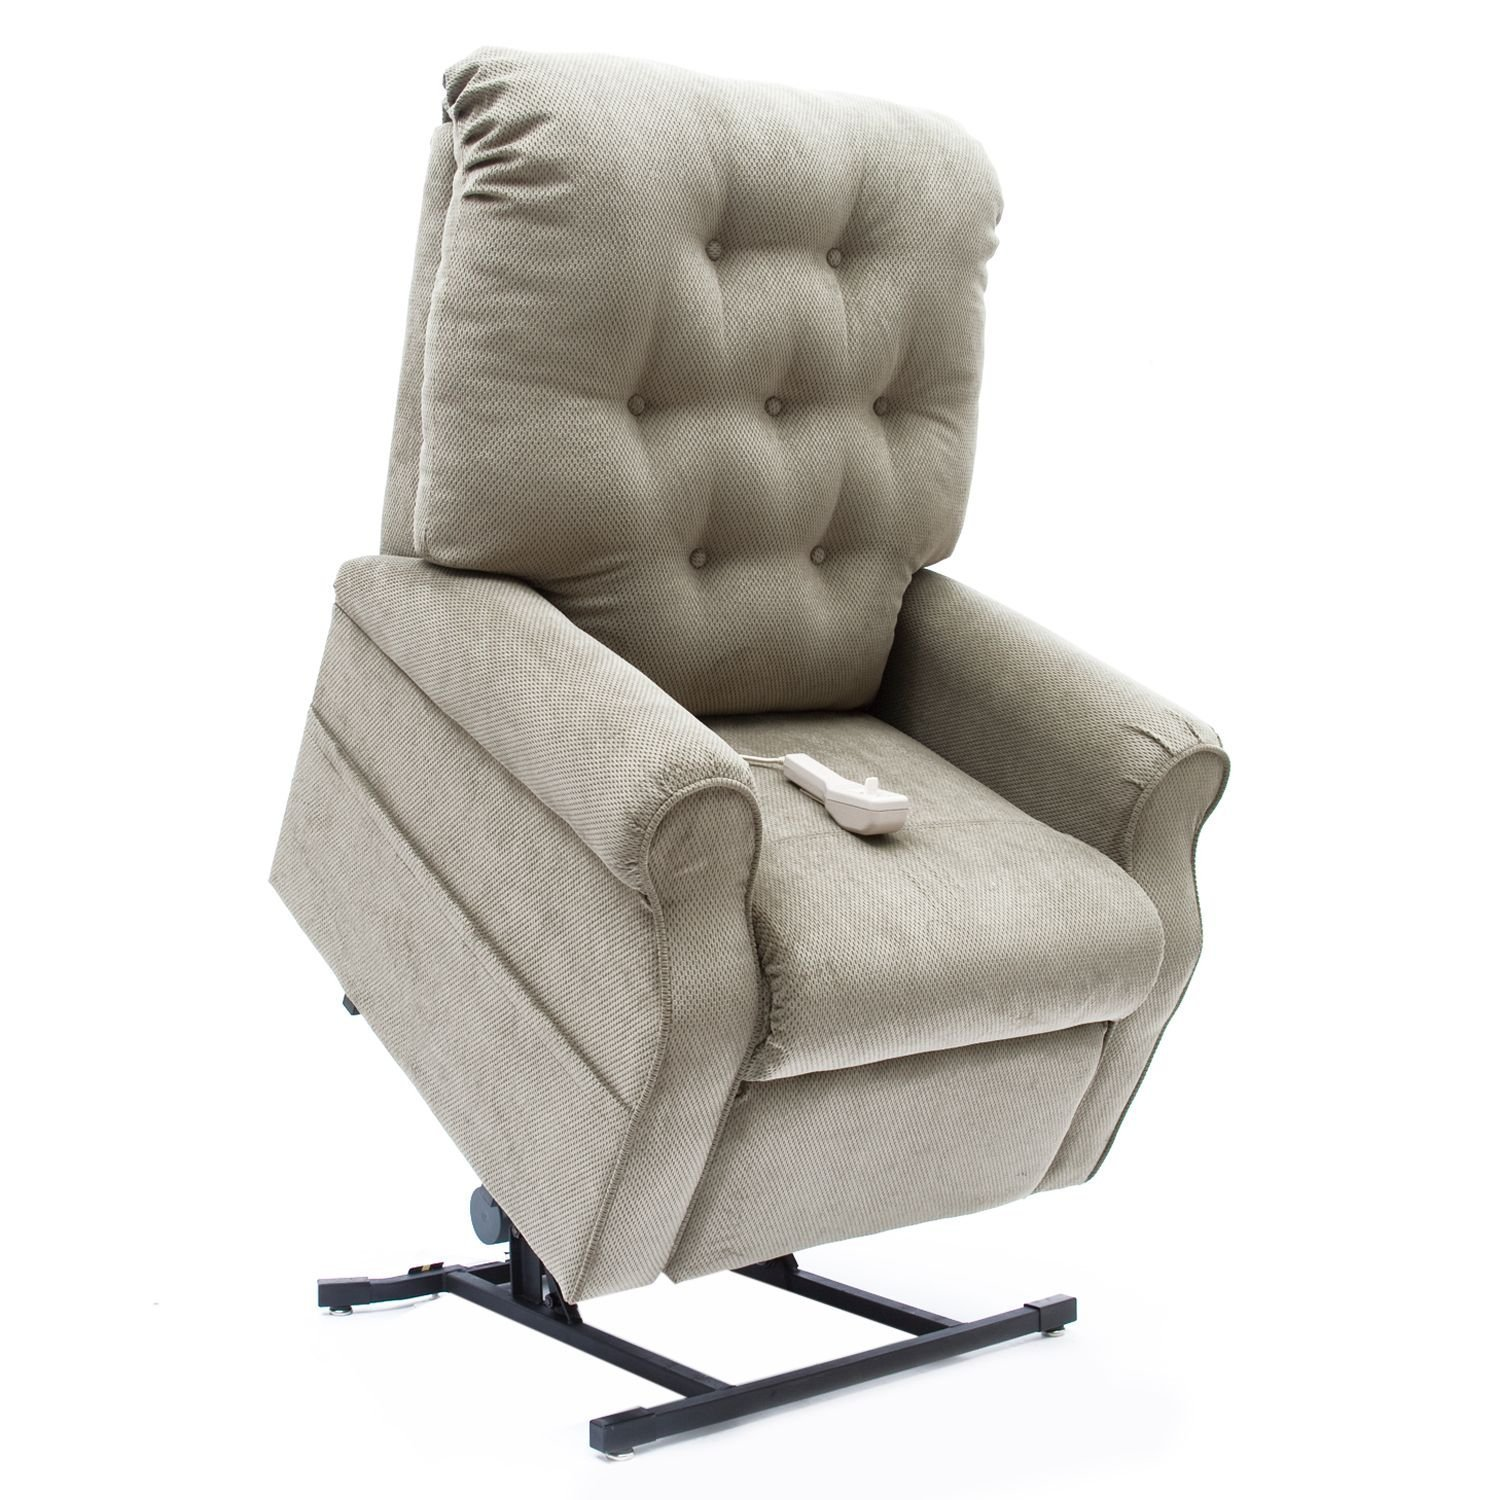 5 Of The Best Lift Chairs For The Elderly Costculator